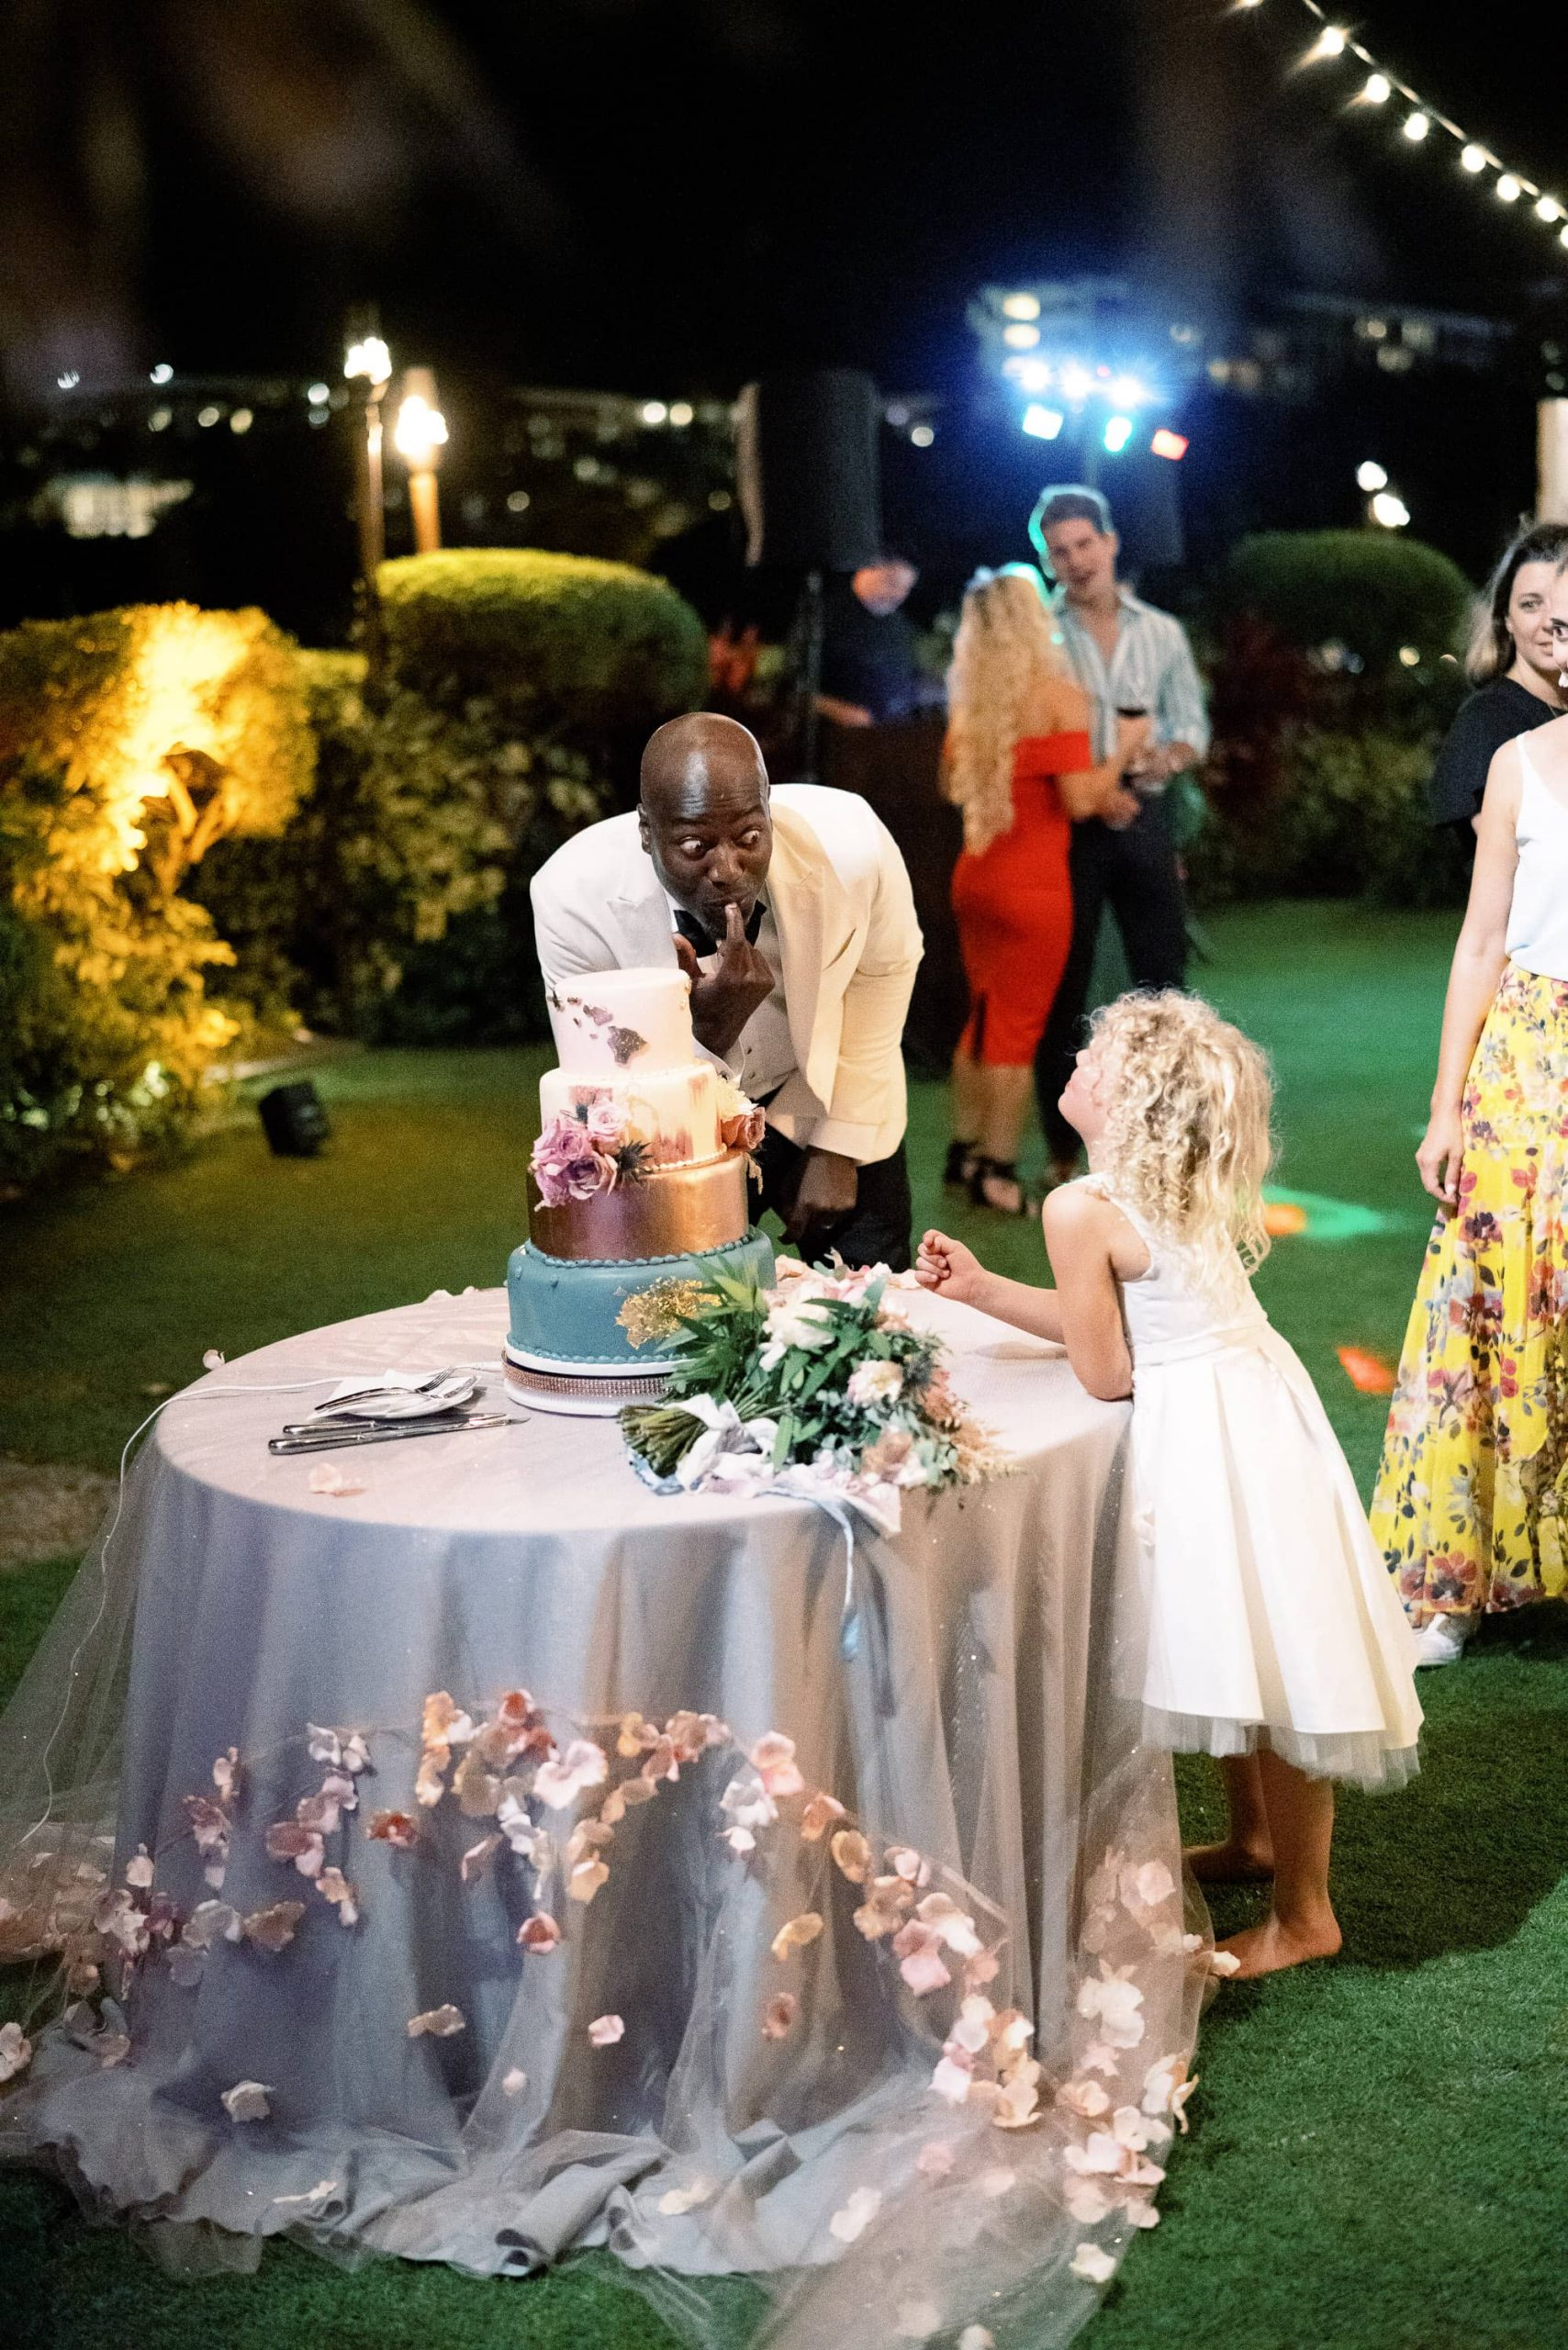 Groom acting goofy with flower girl and cake during reception at Maui wedding at Four Seasons Resort Maui in Wailea, Hawaii | Photo by James x Schulze